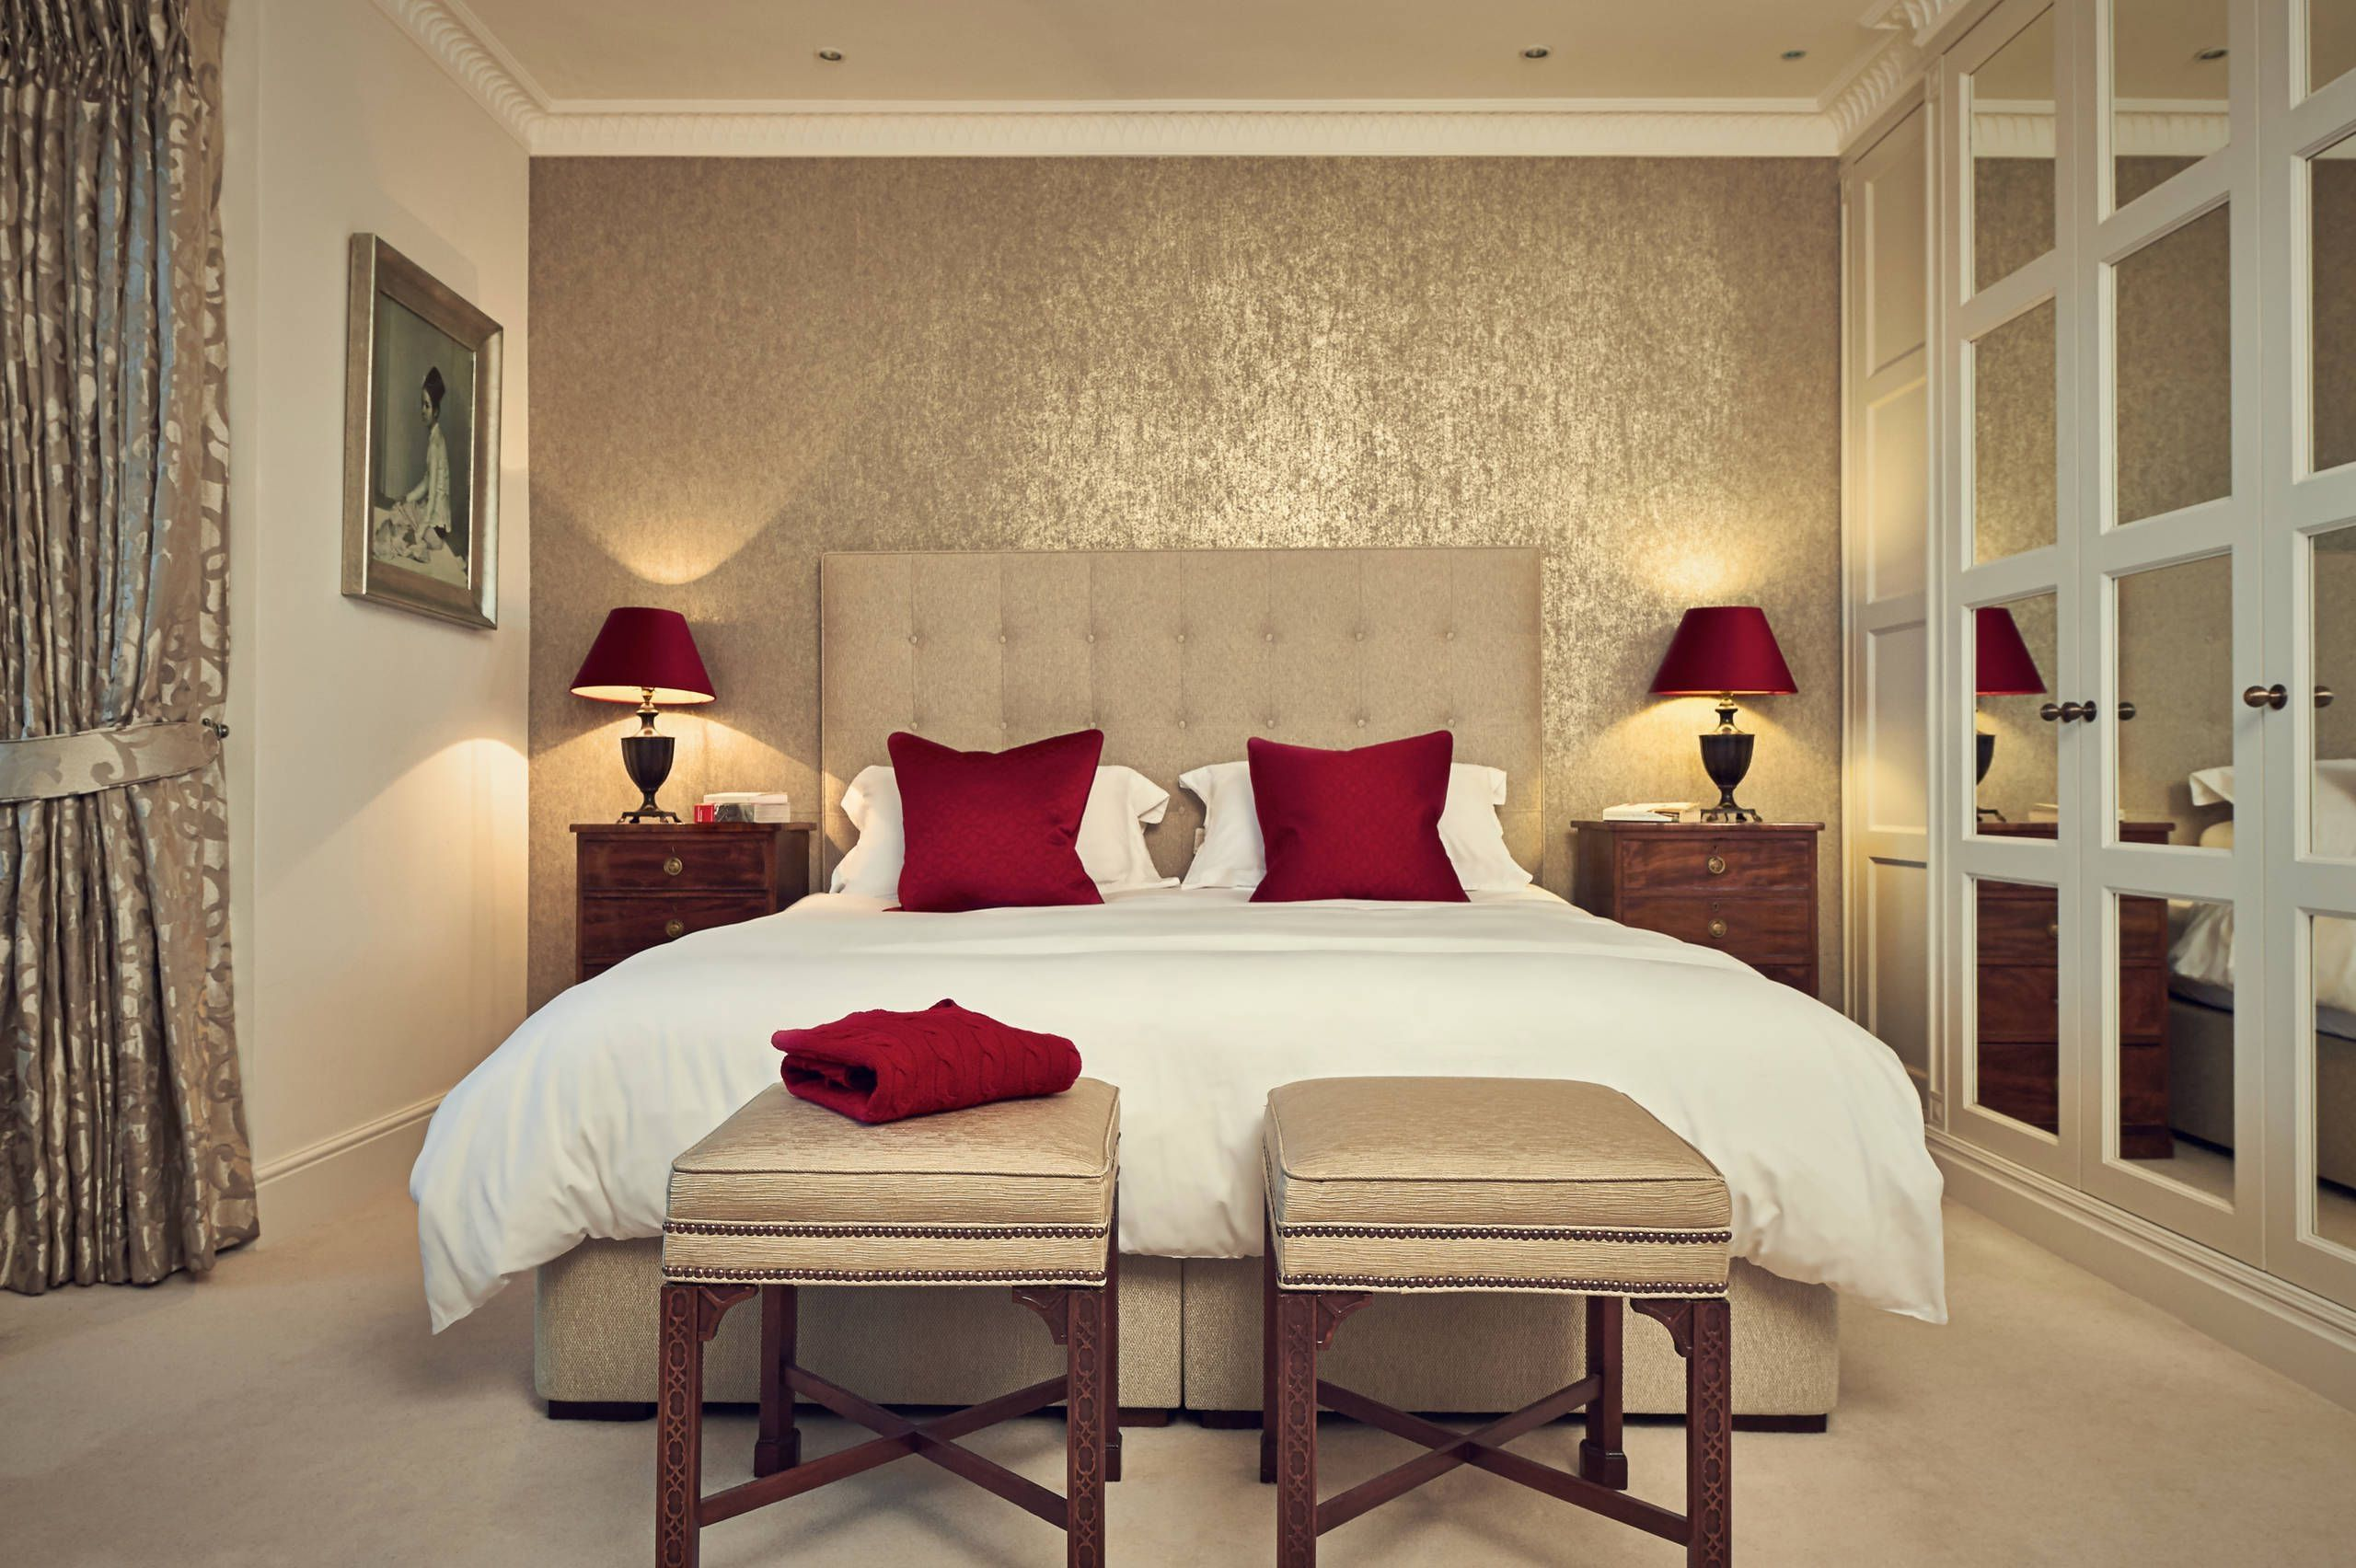 Ideas For Master Bedrooms Awesome Master Bedroom Decorating Ideas Inspiring Ideas For Master Bedrooms Master Bedroom Colors Gold Bedroom Decor Traditional Master Bedroom Decorating Ideas